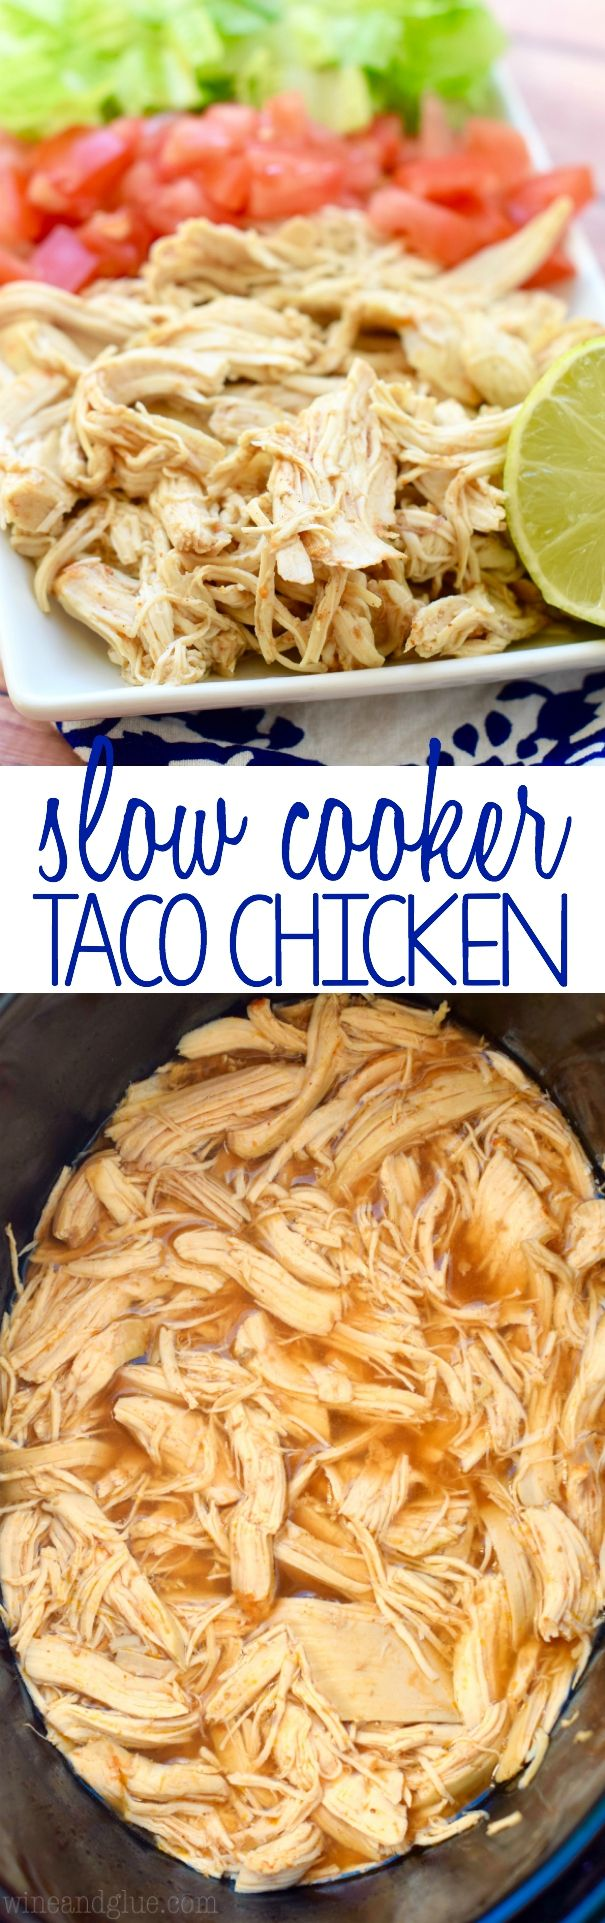 This Slow Cooker Taco Chicken is super simple to make, but it is the start of so many delicious dinners! It needs to be part of your regular dinner rotations!